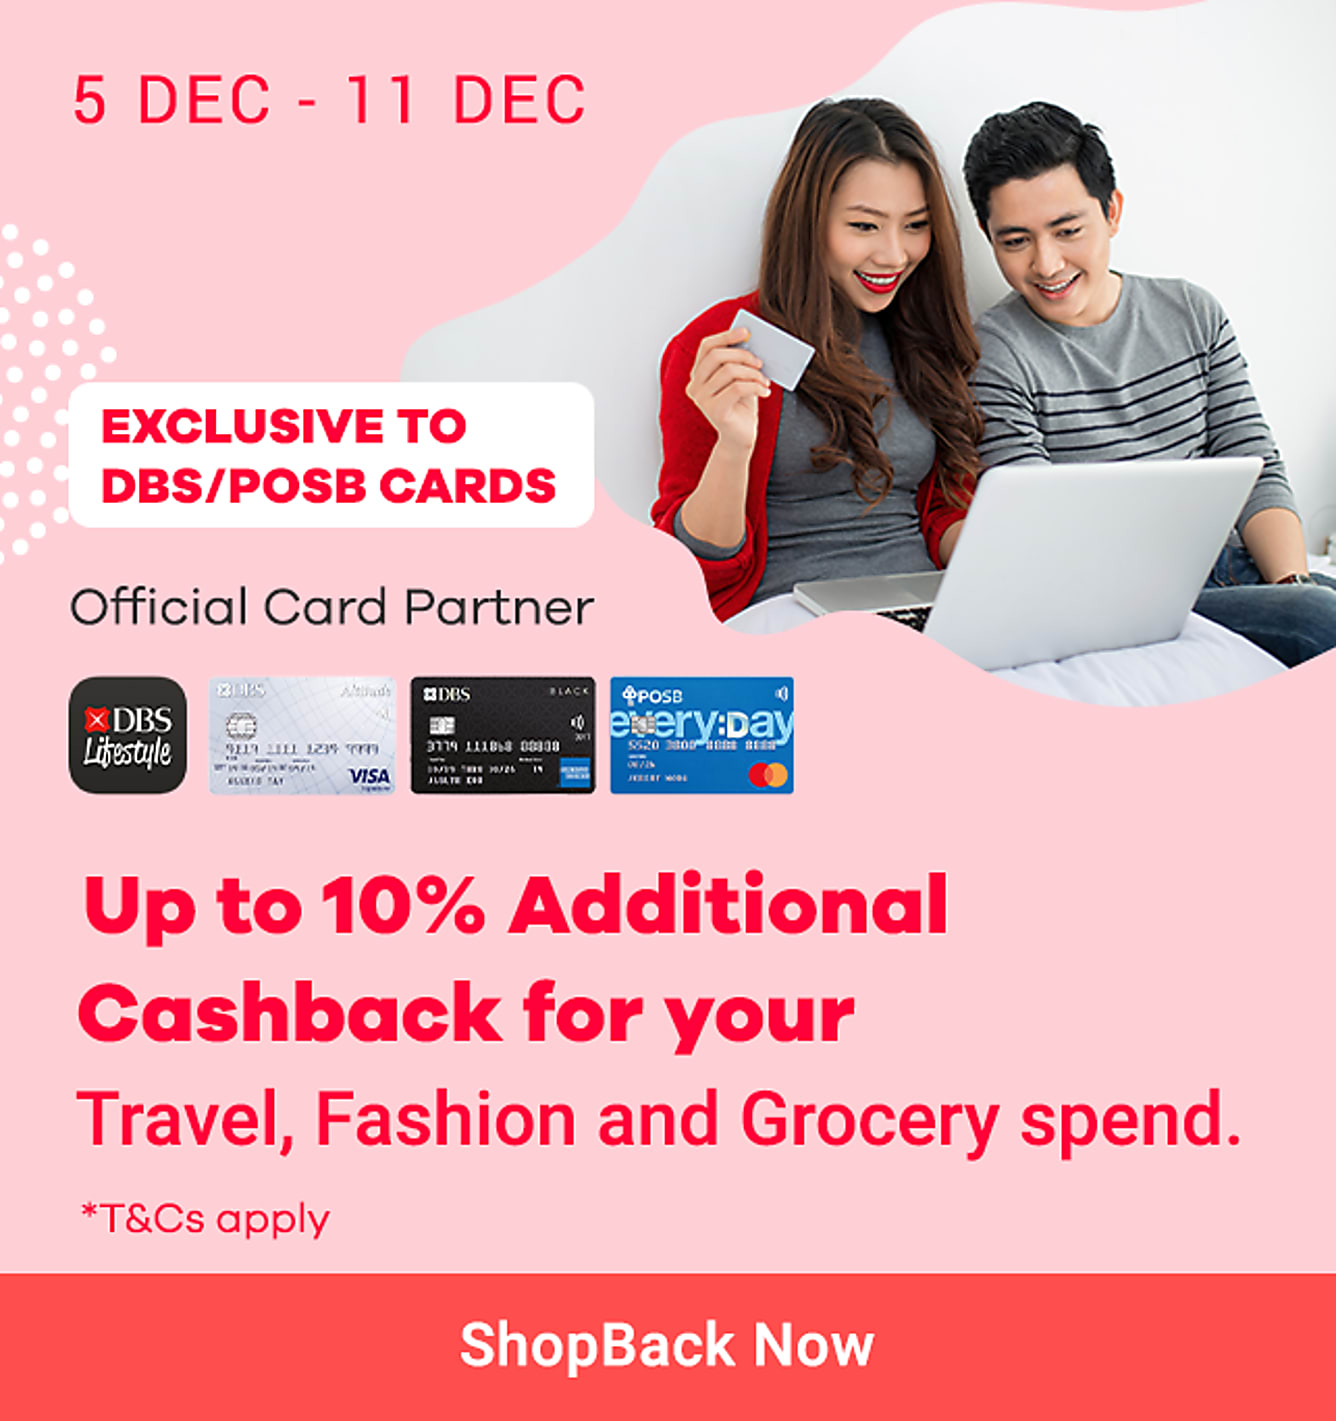 Additional 10% Cashback